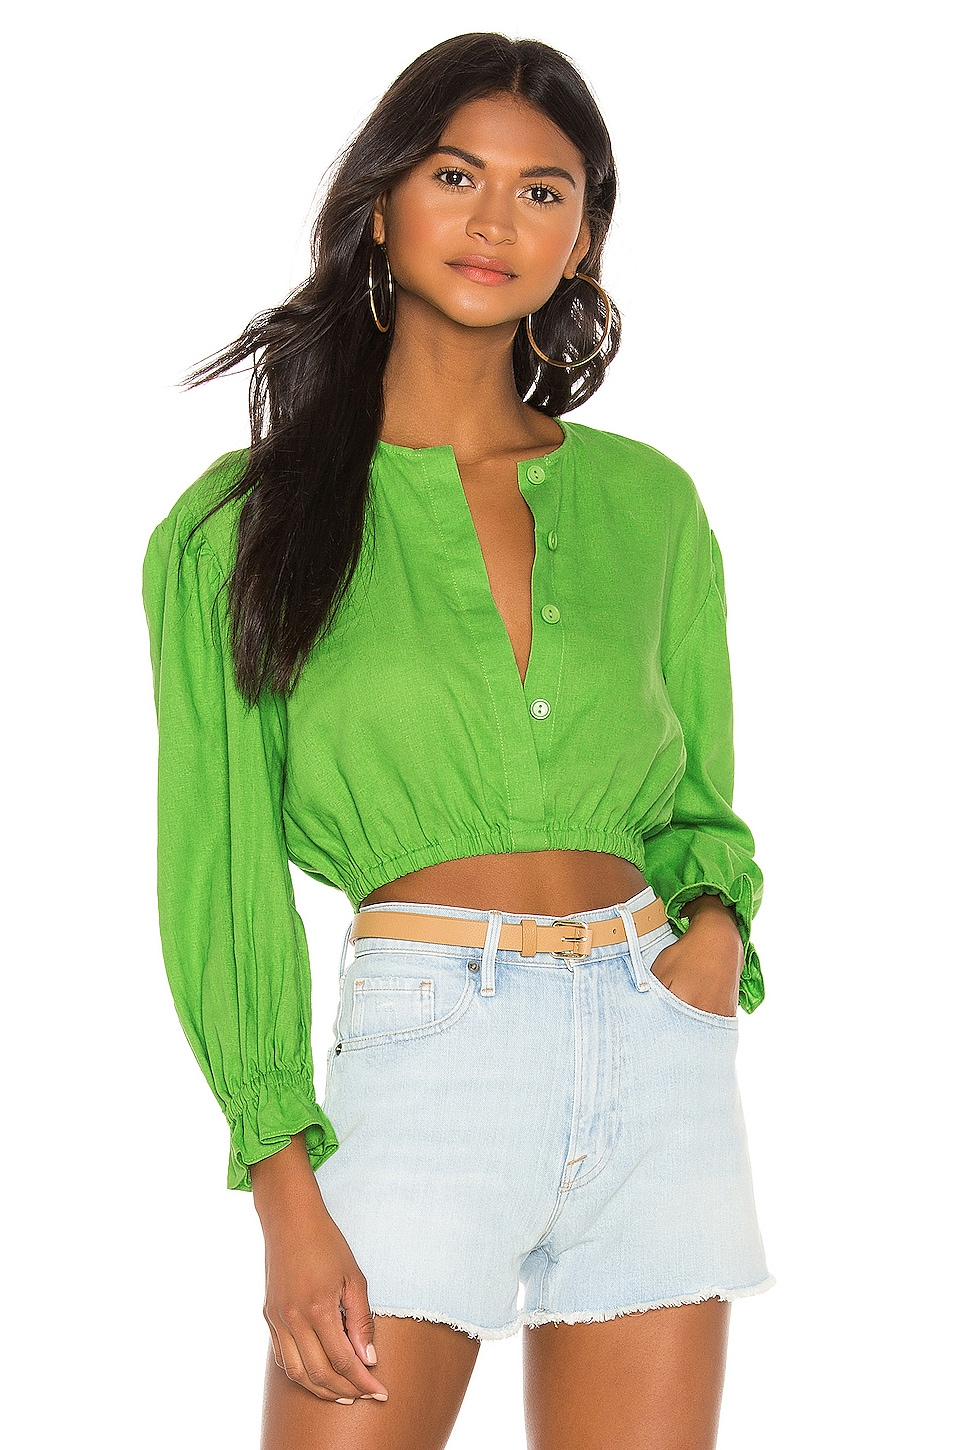 L'Academie The Vera Blouse in Lime